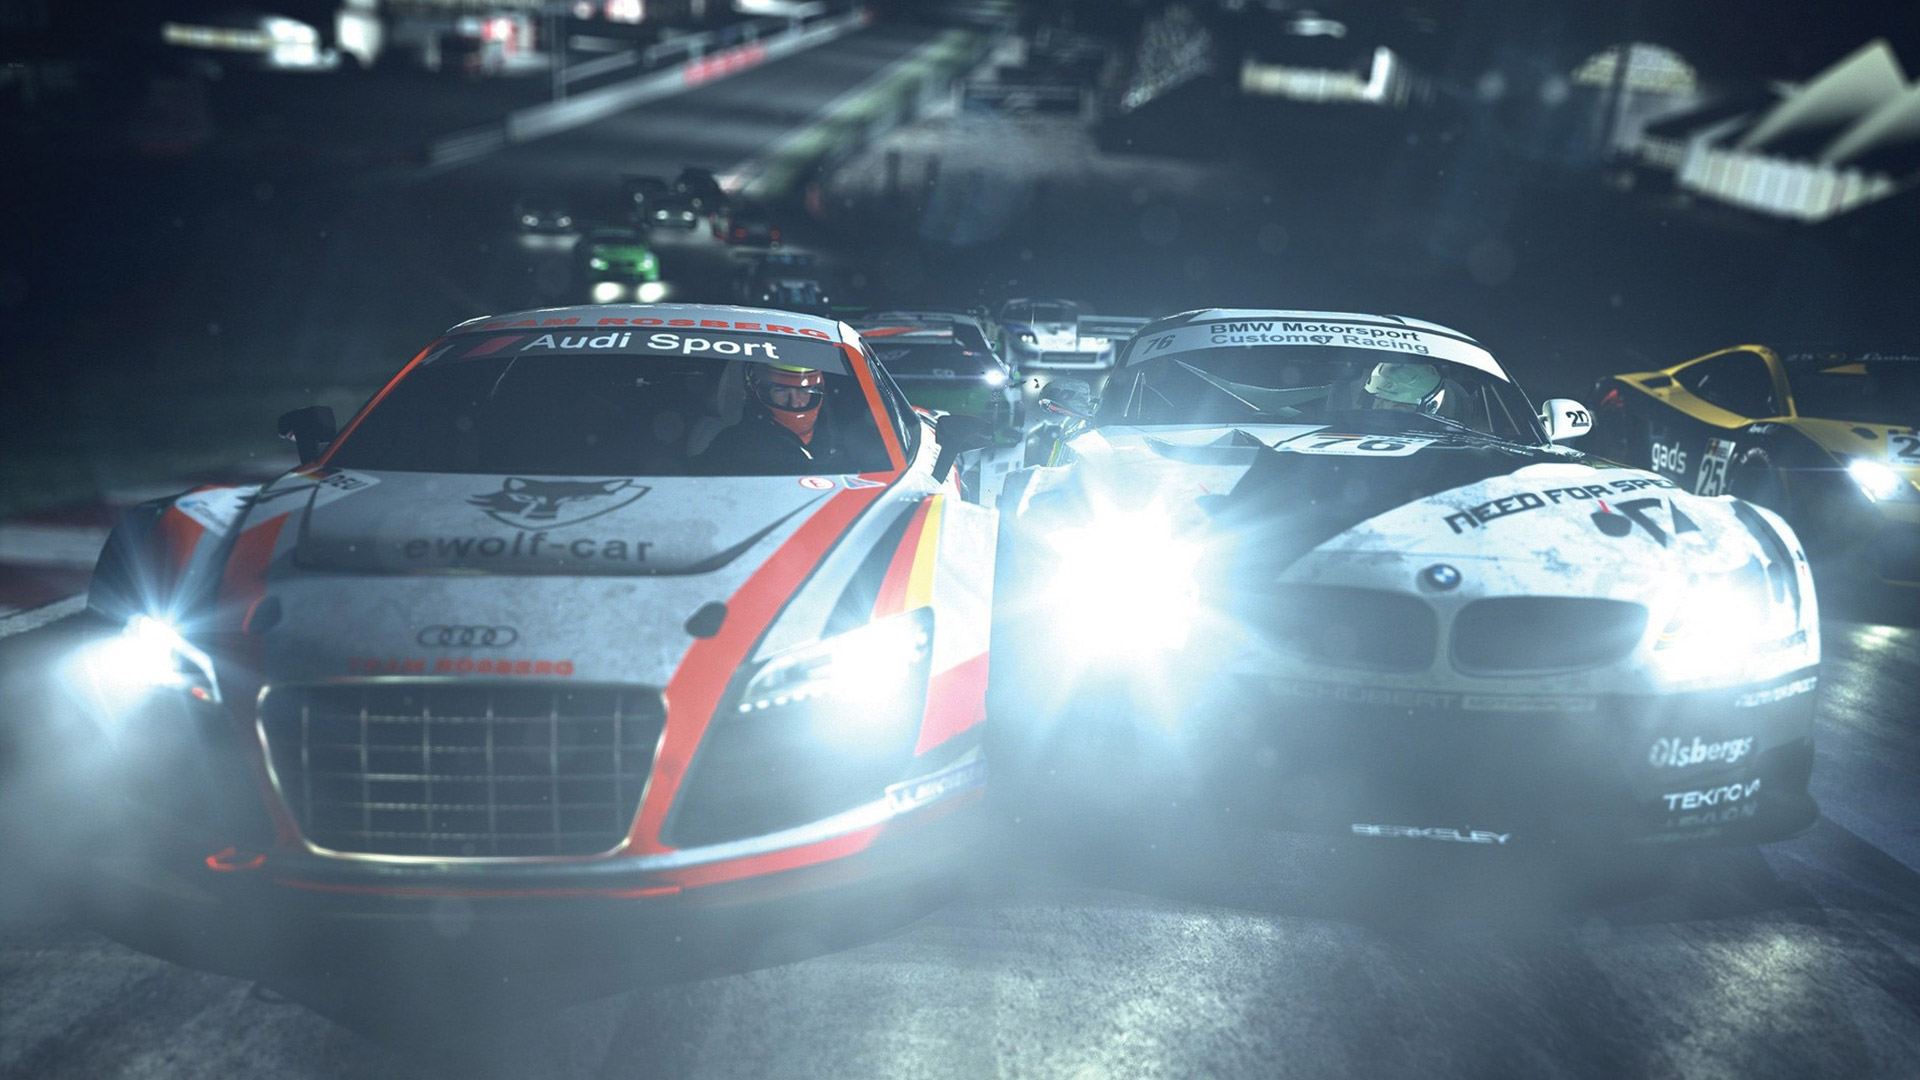 Need for Speed: Shift 2 Unleashed Wallpaper in 1920x1080